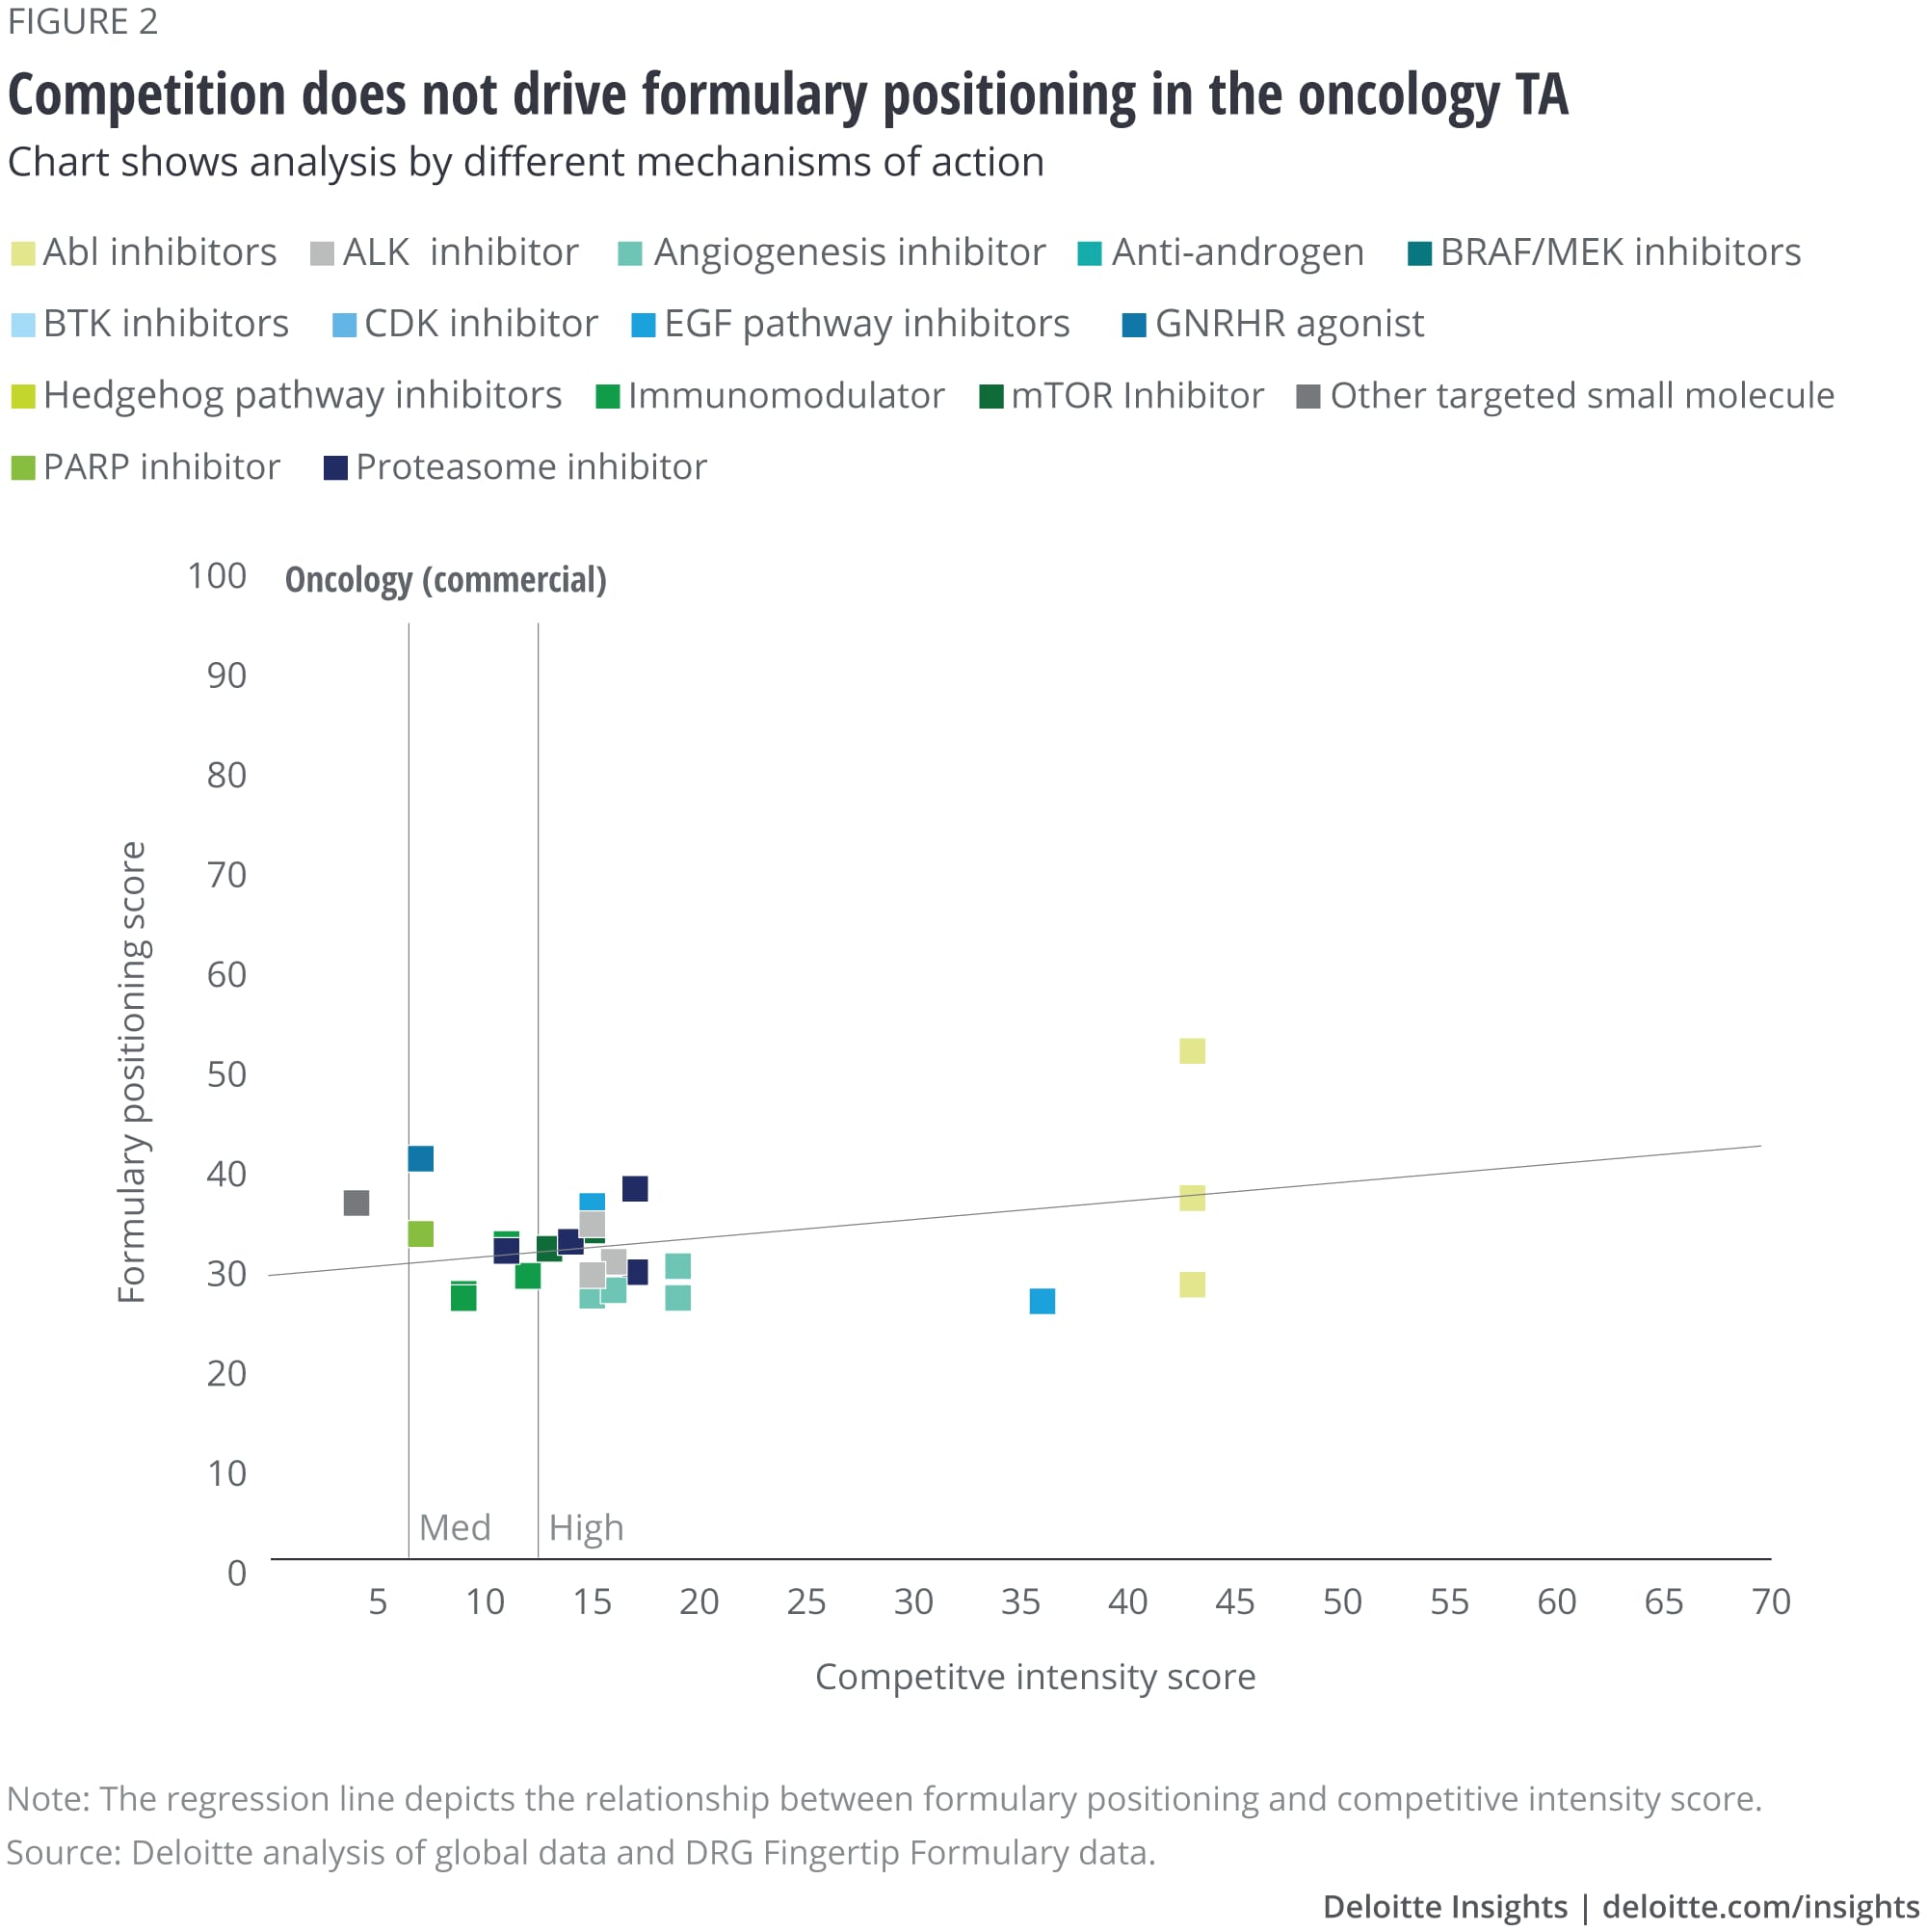 Competition does not drive formulary positioning in the oncology TA